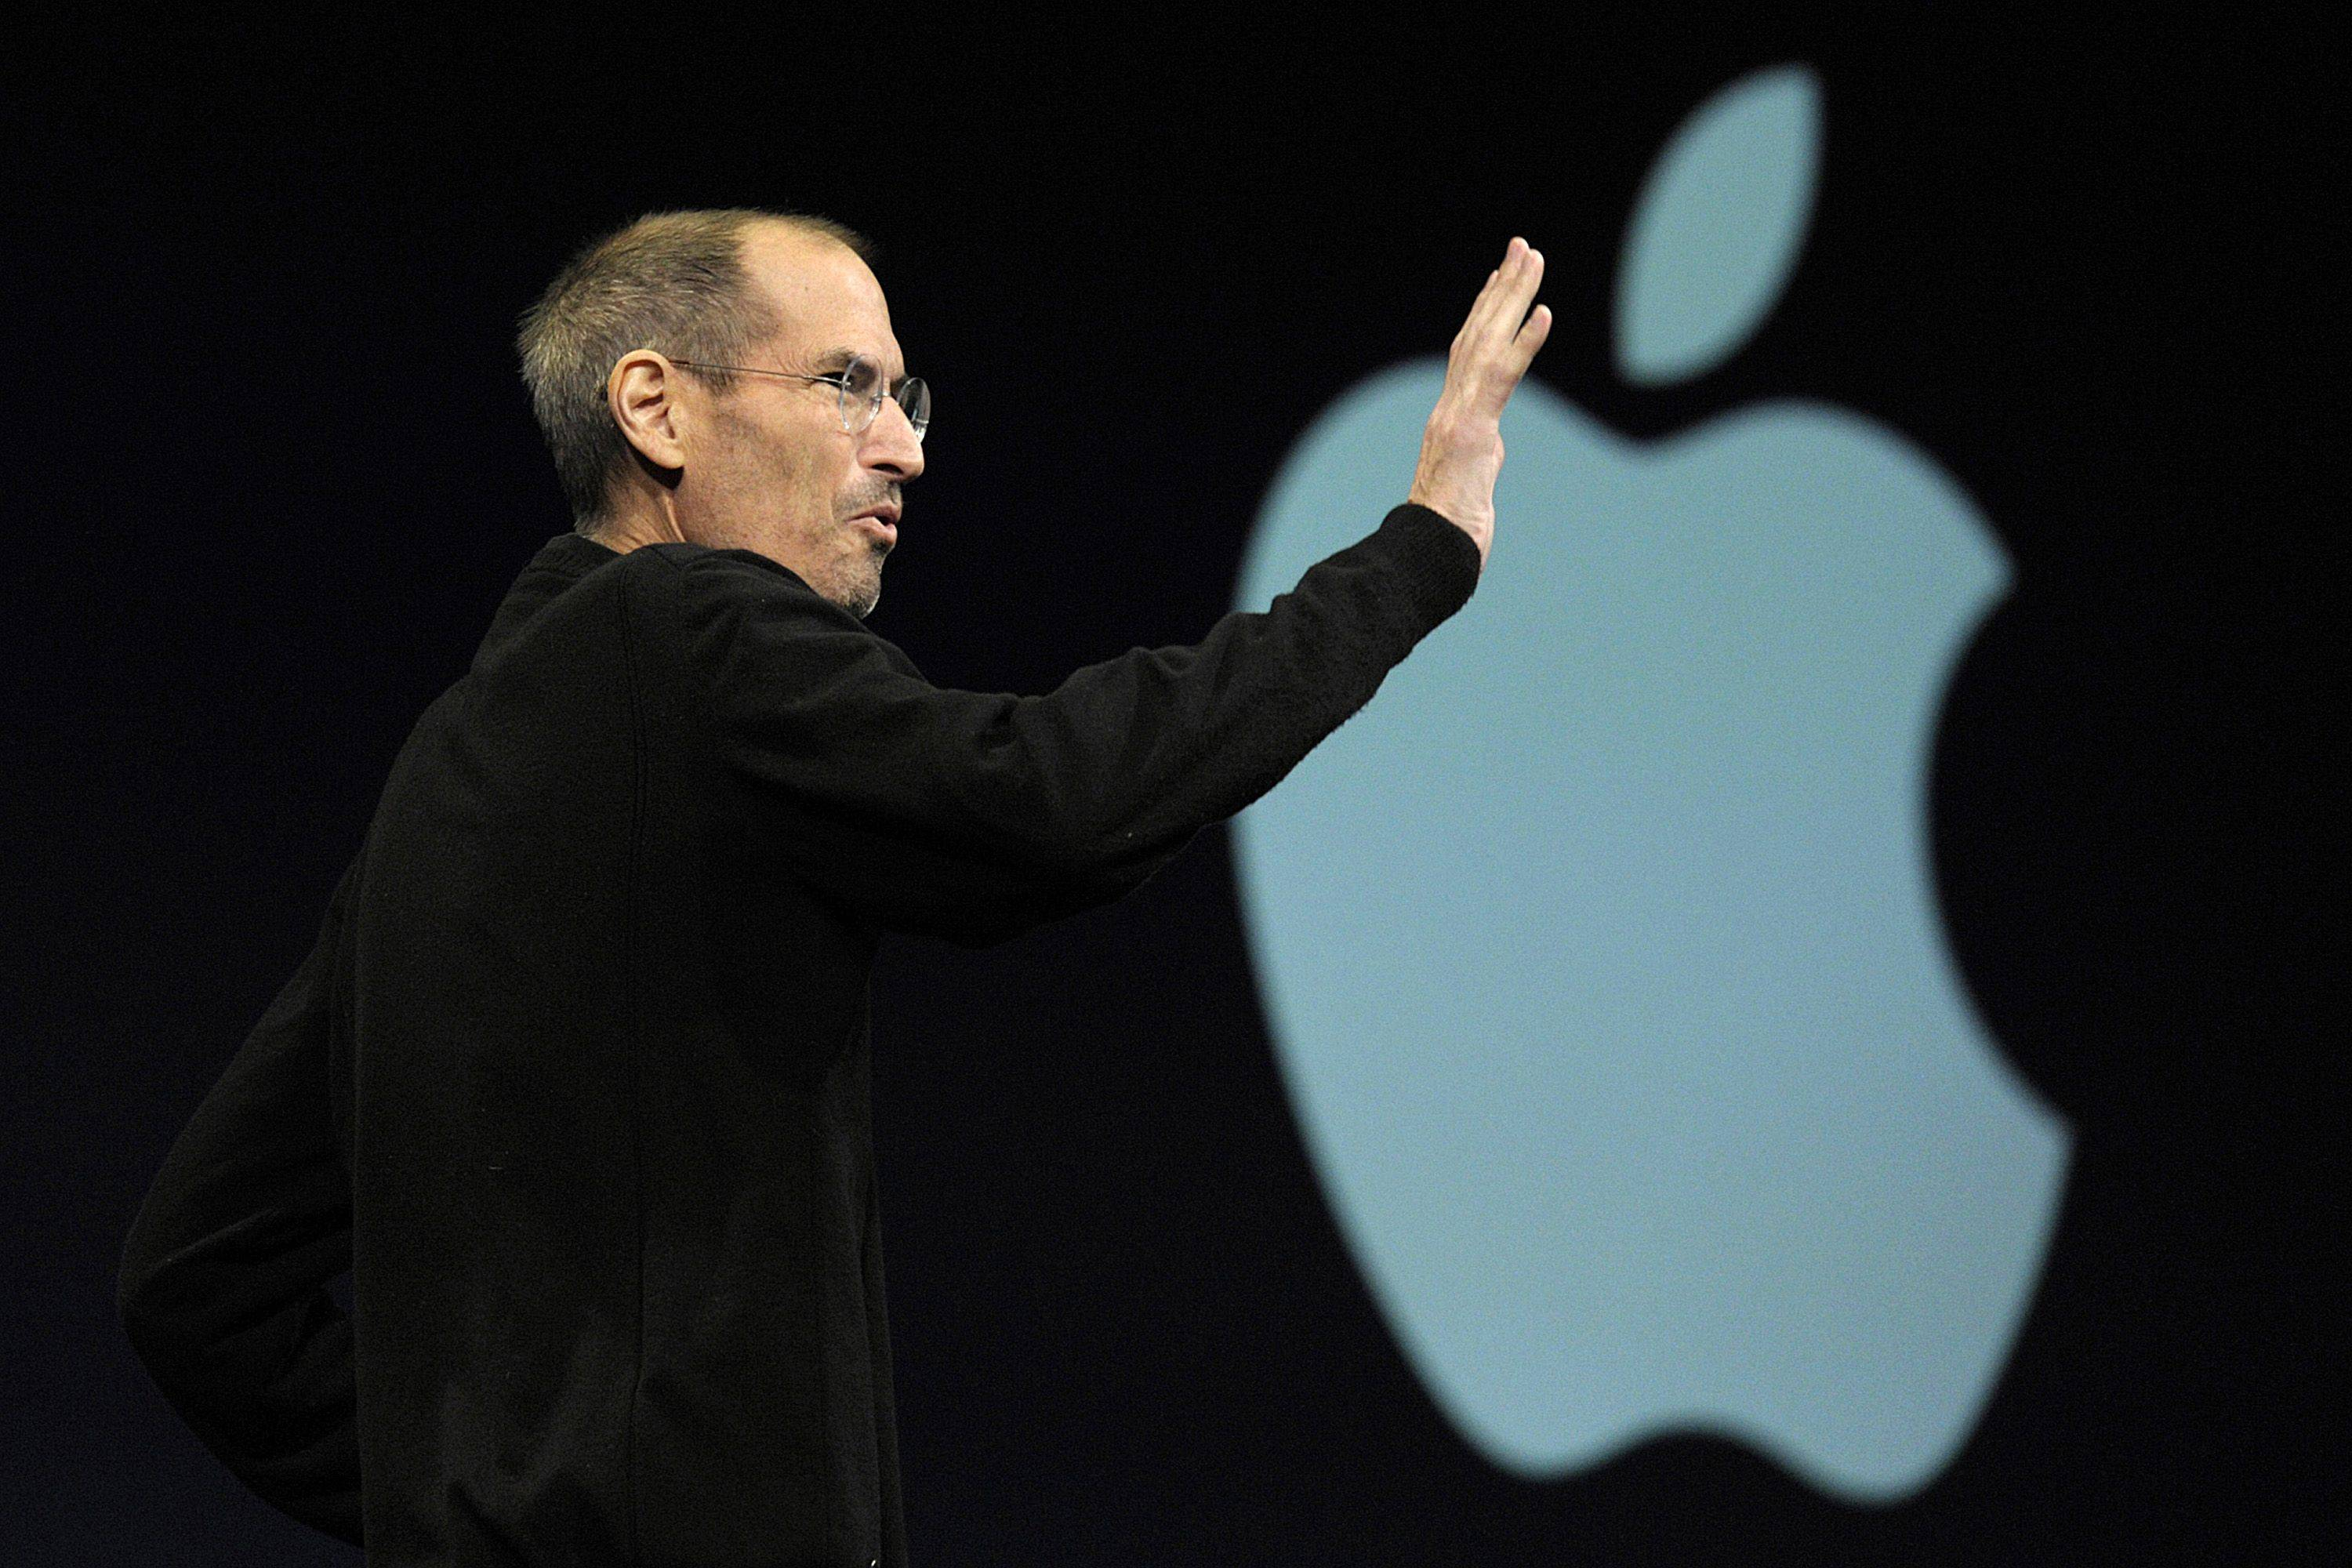 Stock prices rose at Sony, Nokie, Samsung and HTC Corp. after Steve Jobs announced his retirement as the CEO of Apple.